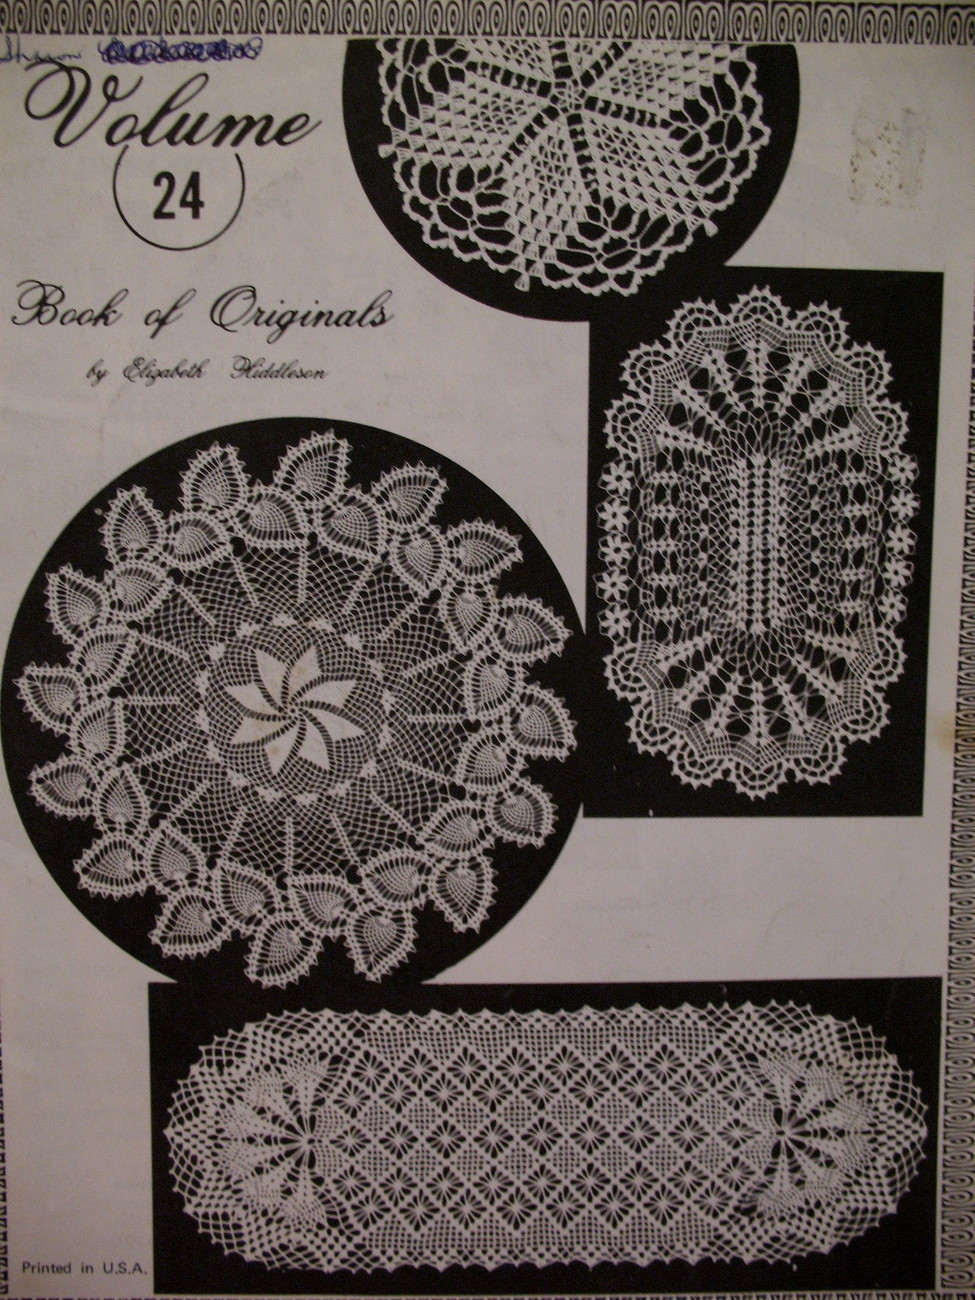 Vintage Doilies Elegant Vintage Crochet Doily Doilies Patterns Elizabeth Hiddleson Of Superb 47 Images Vintage Doilies